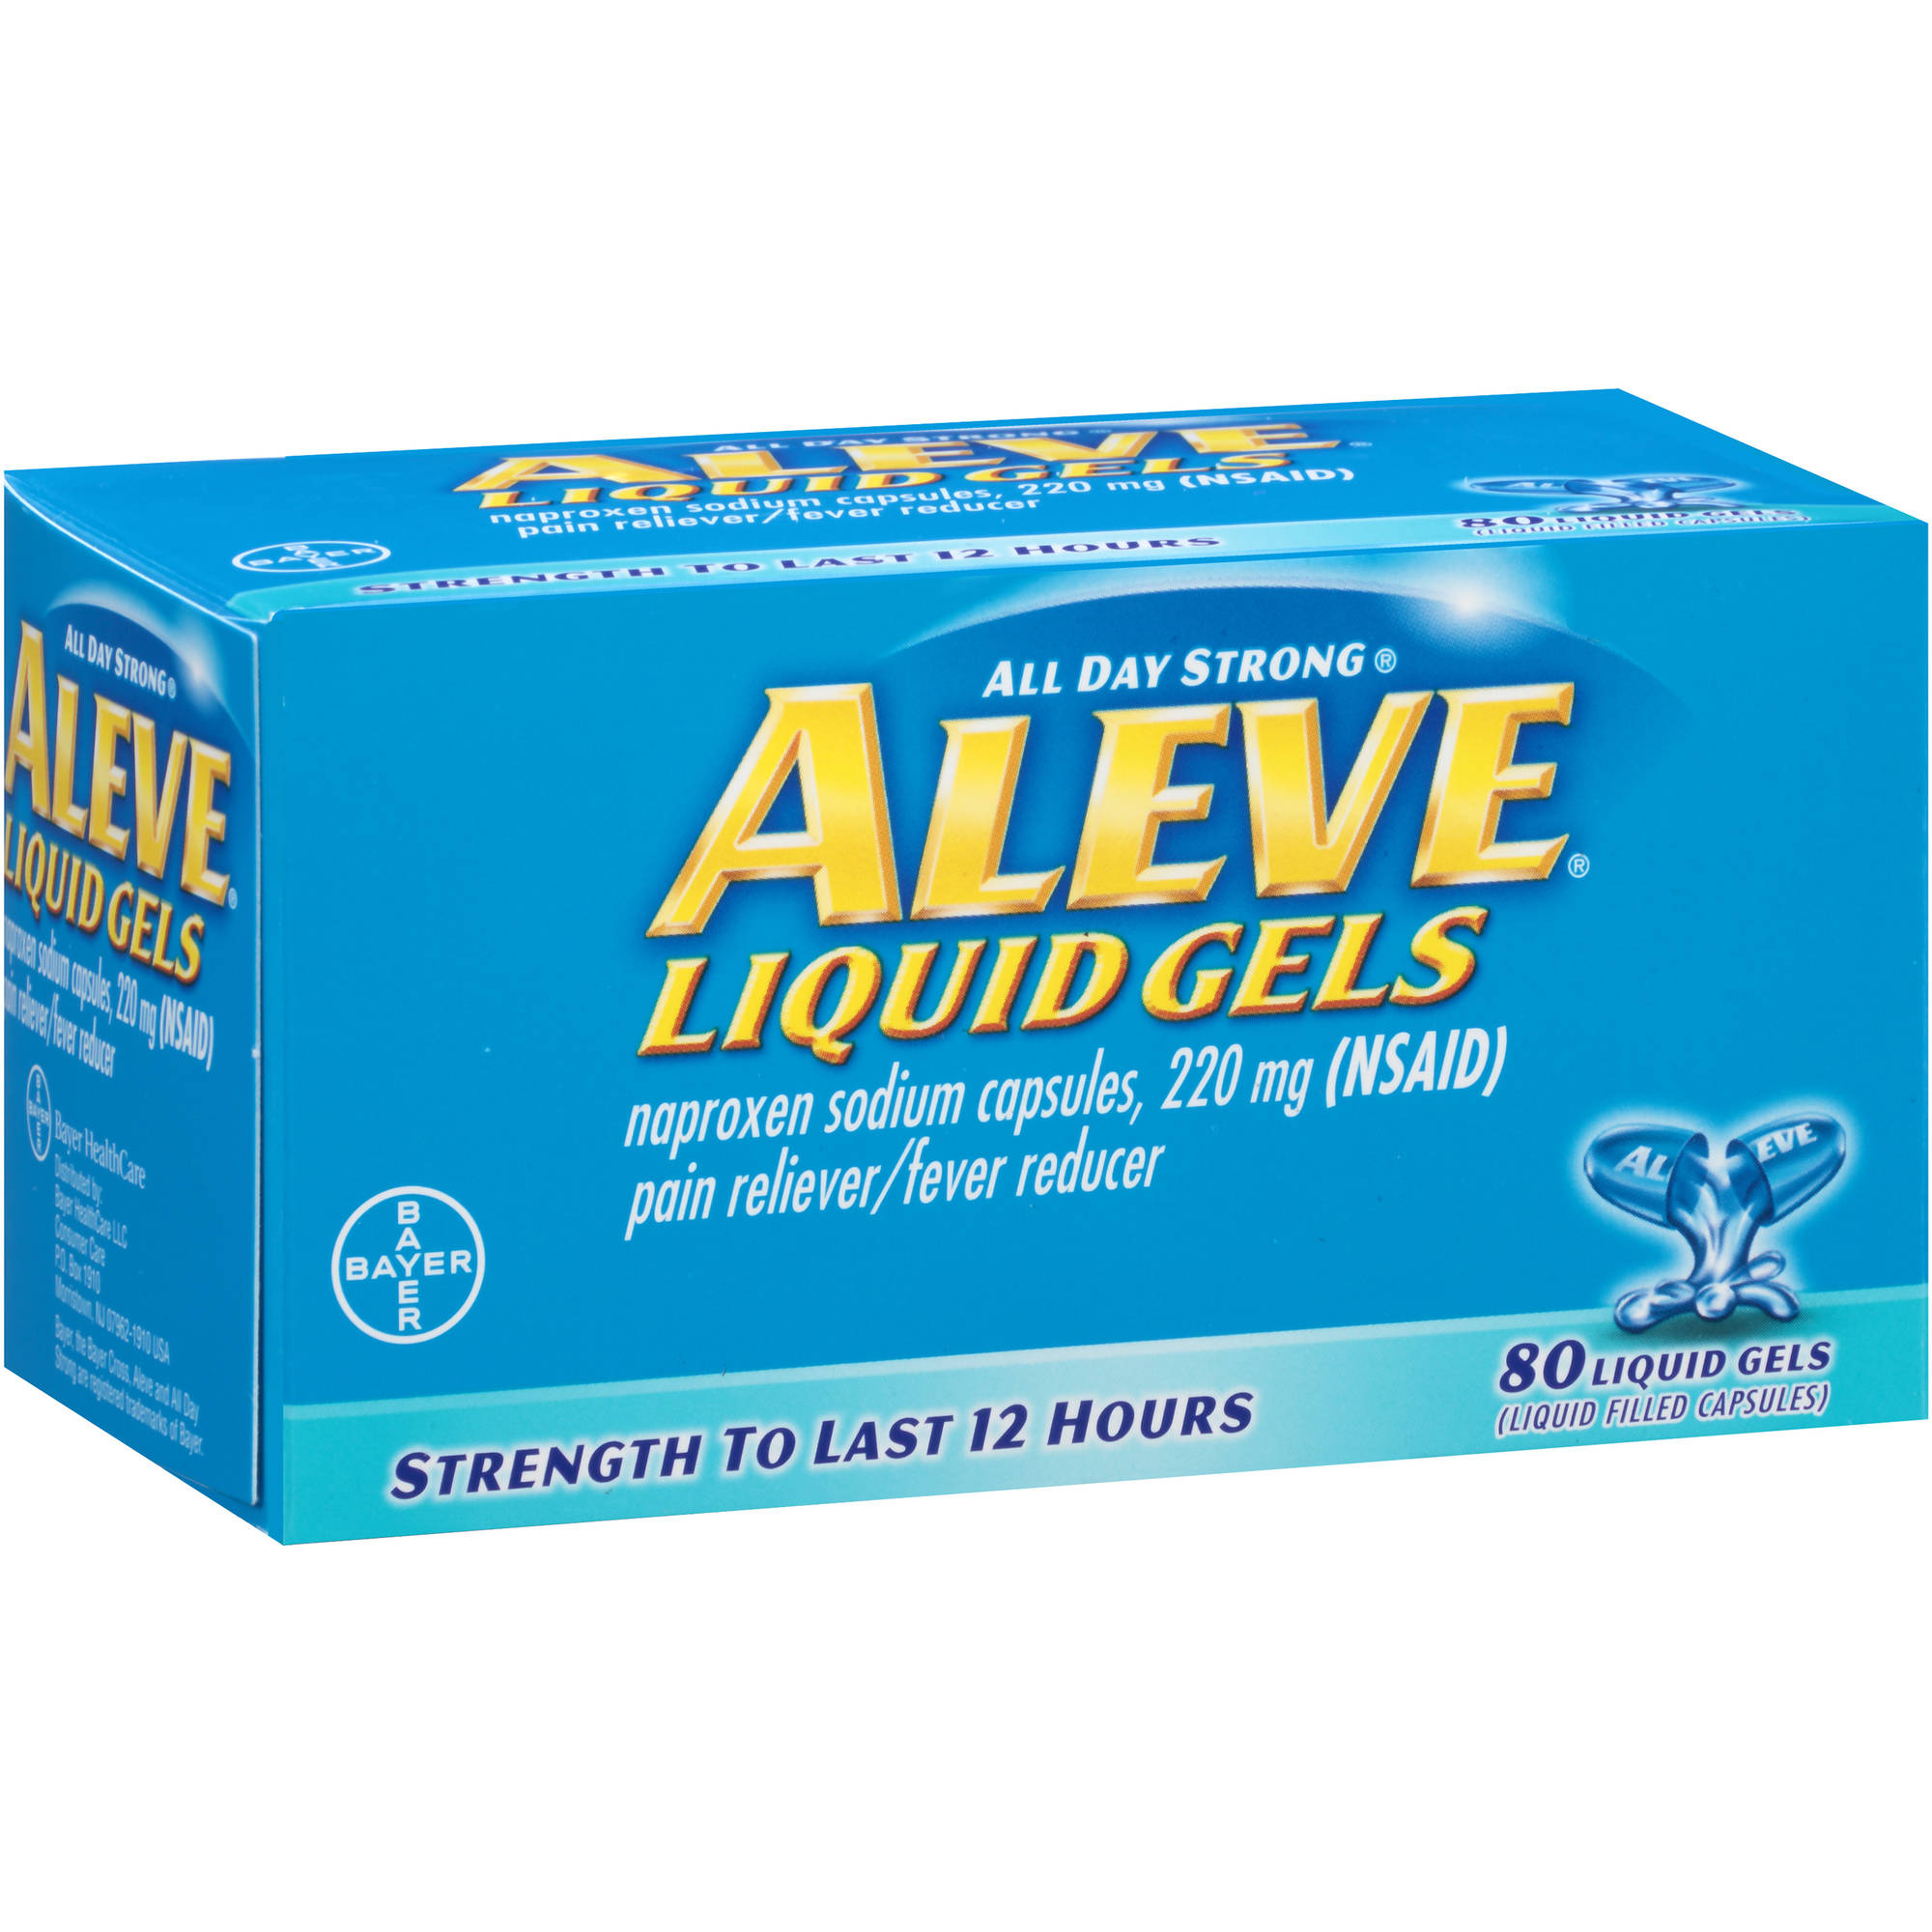 Aleve Pain Reliever/Fever Reducer Naproxen Sodium Liquid Gels, 220mg, 100 count